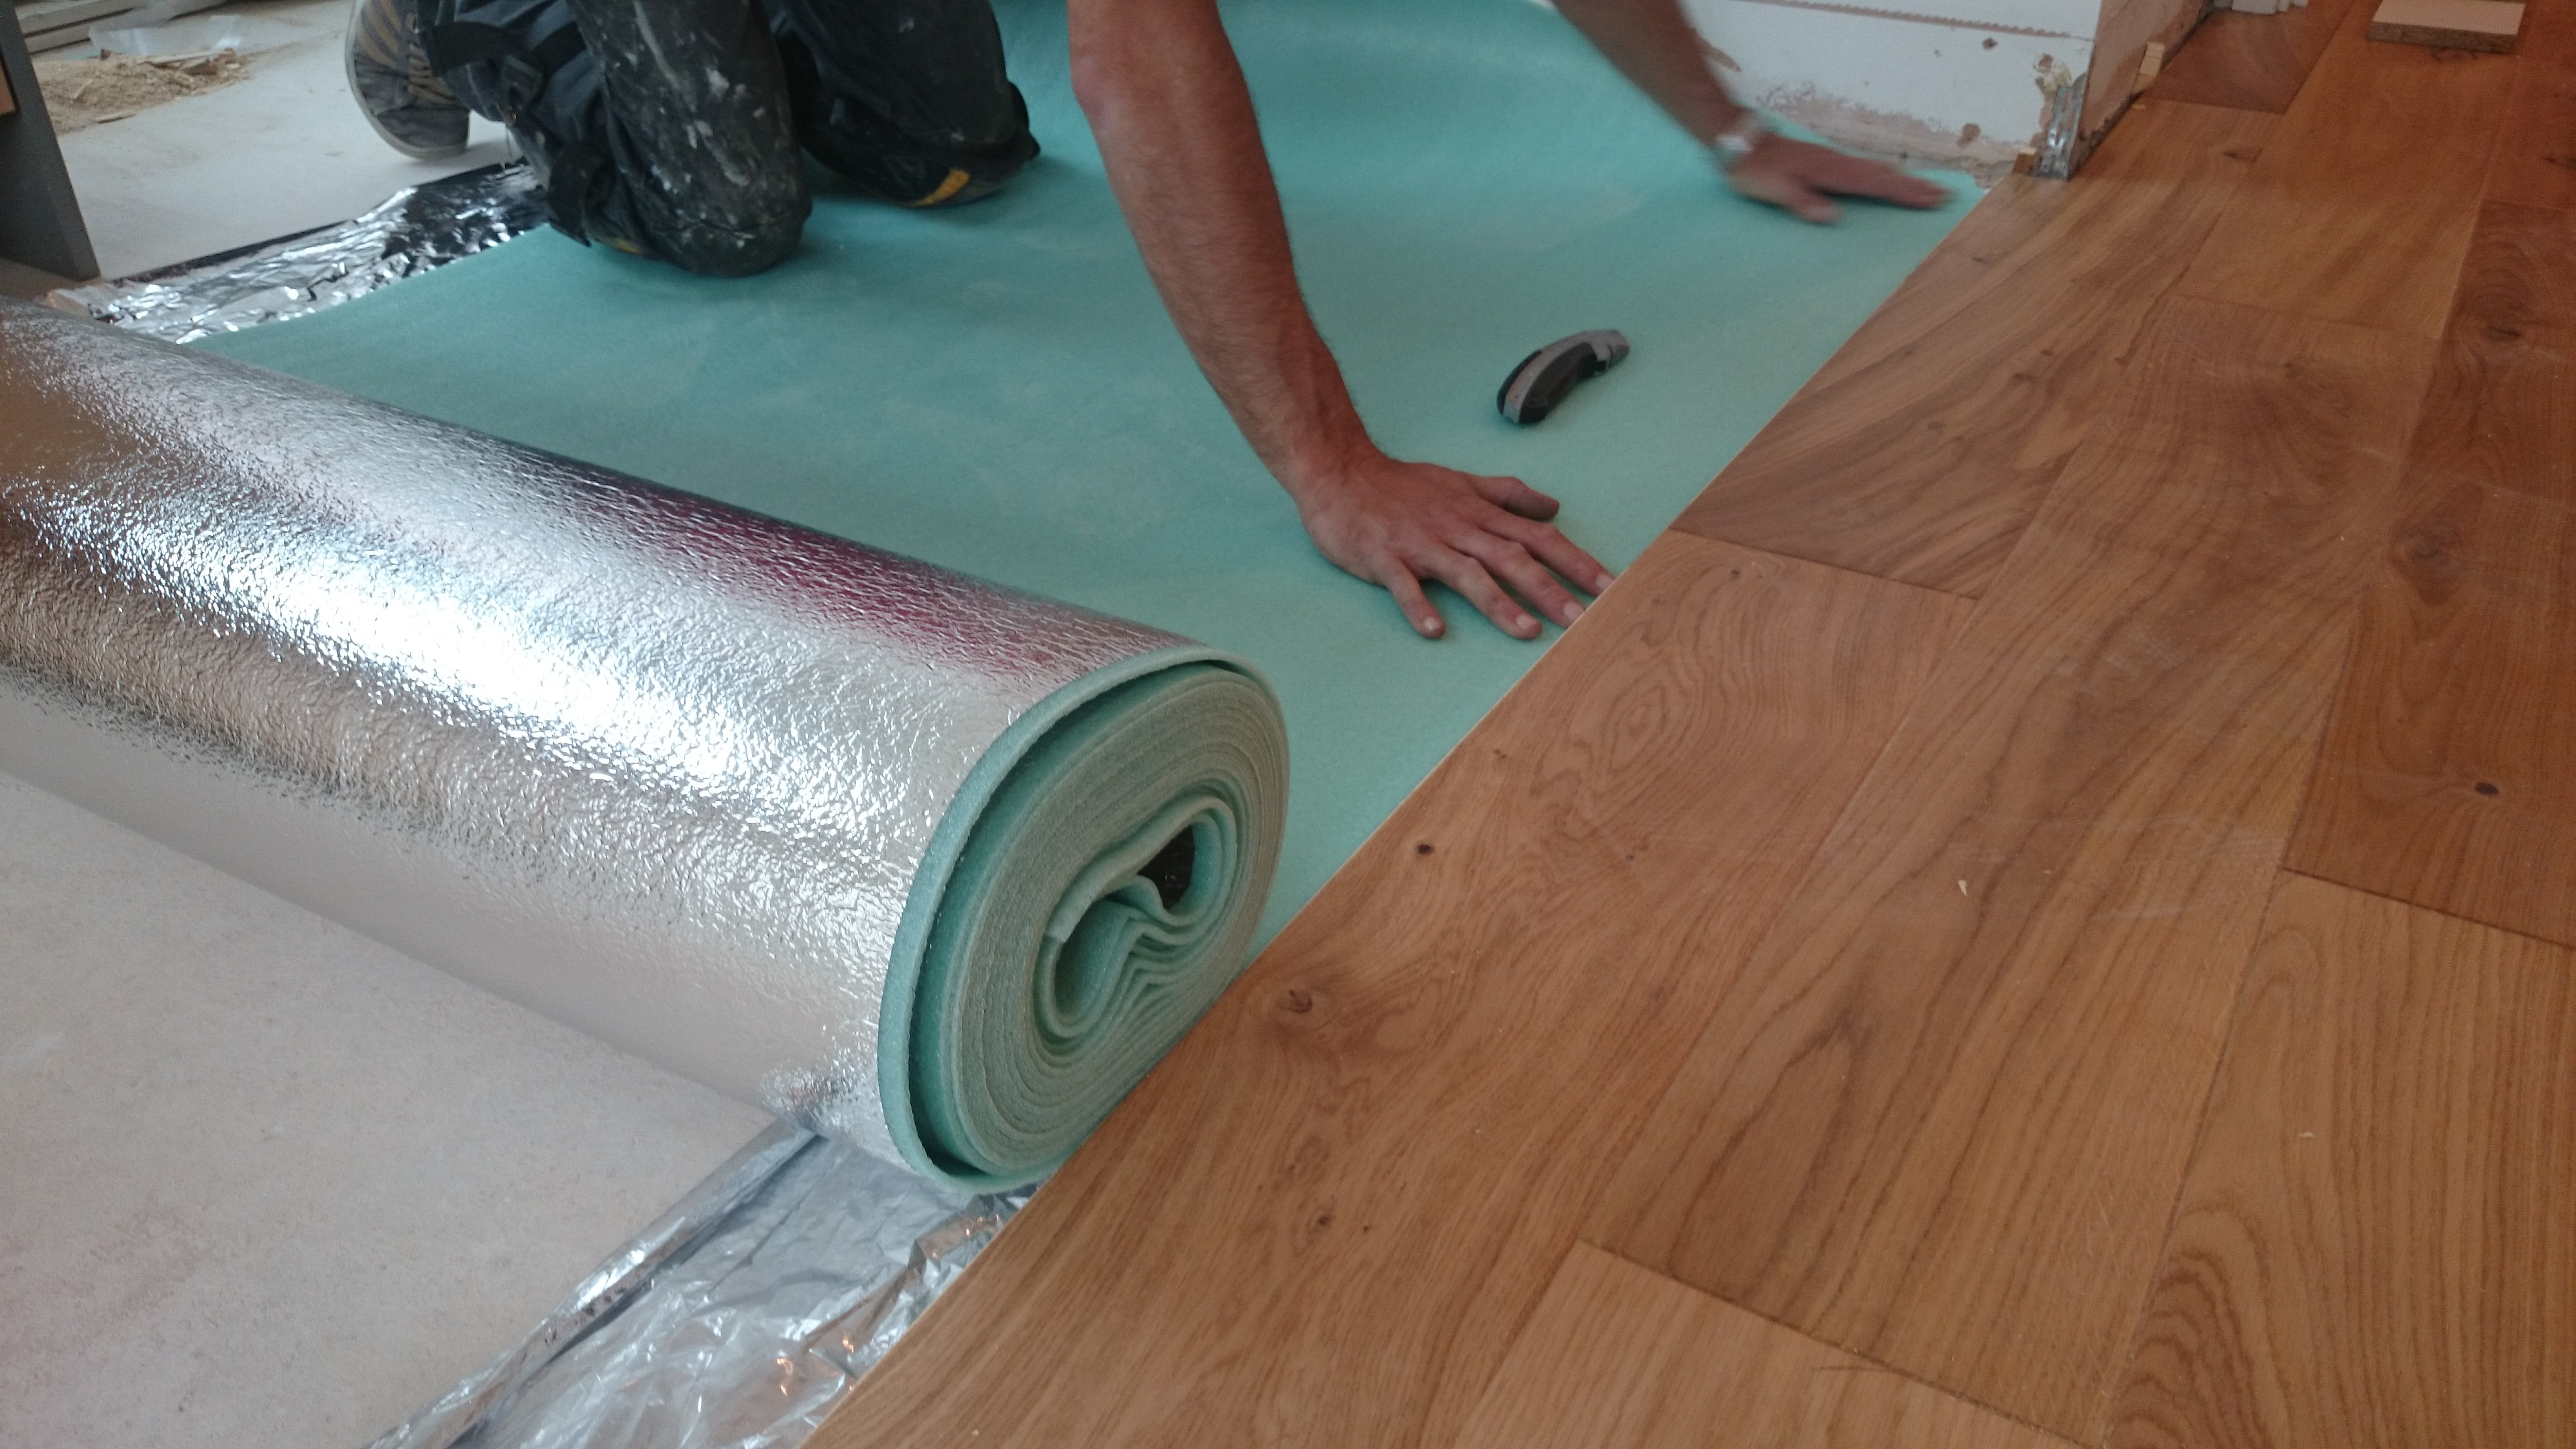 Permalink to Laying Underlay For Engineered Wood Flooring